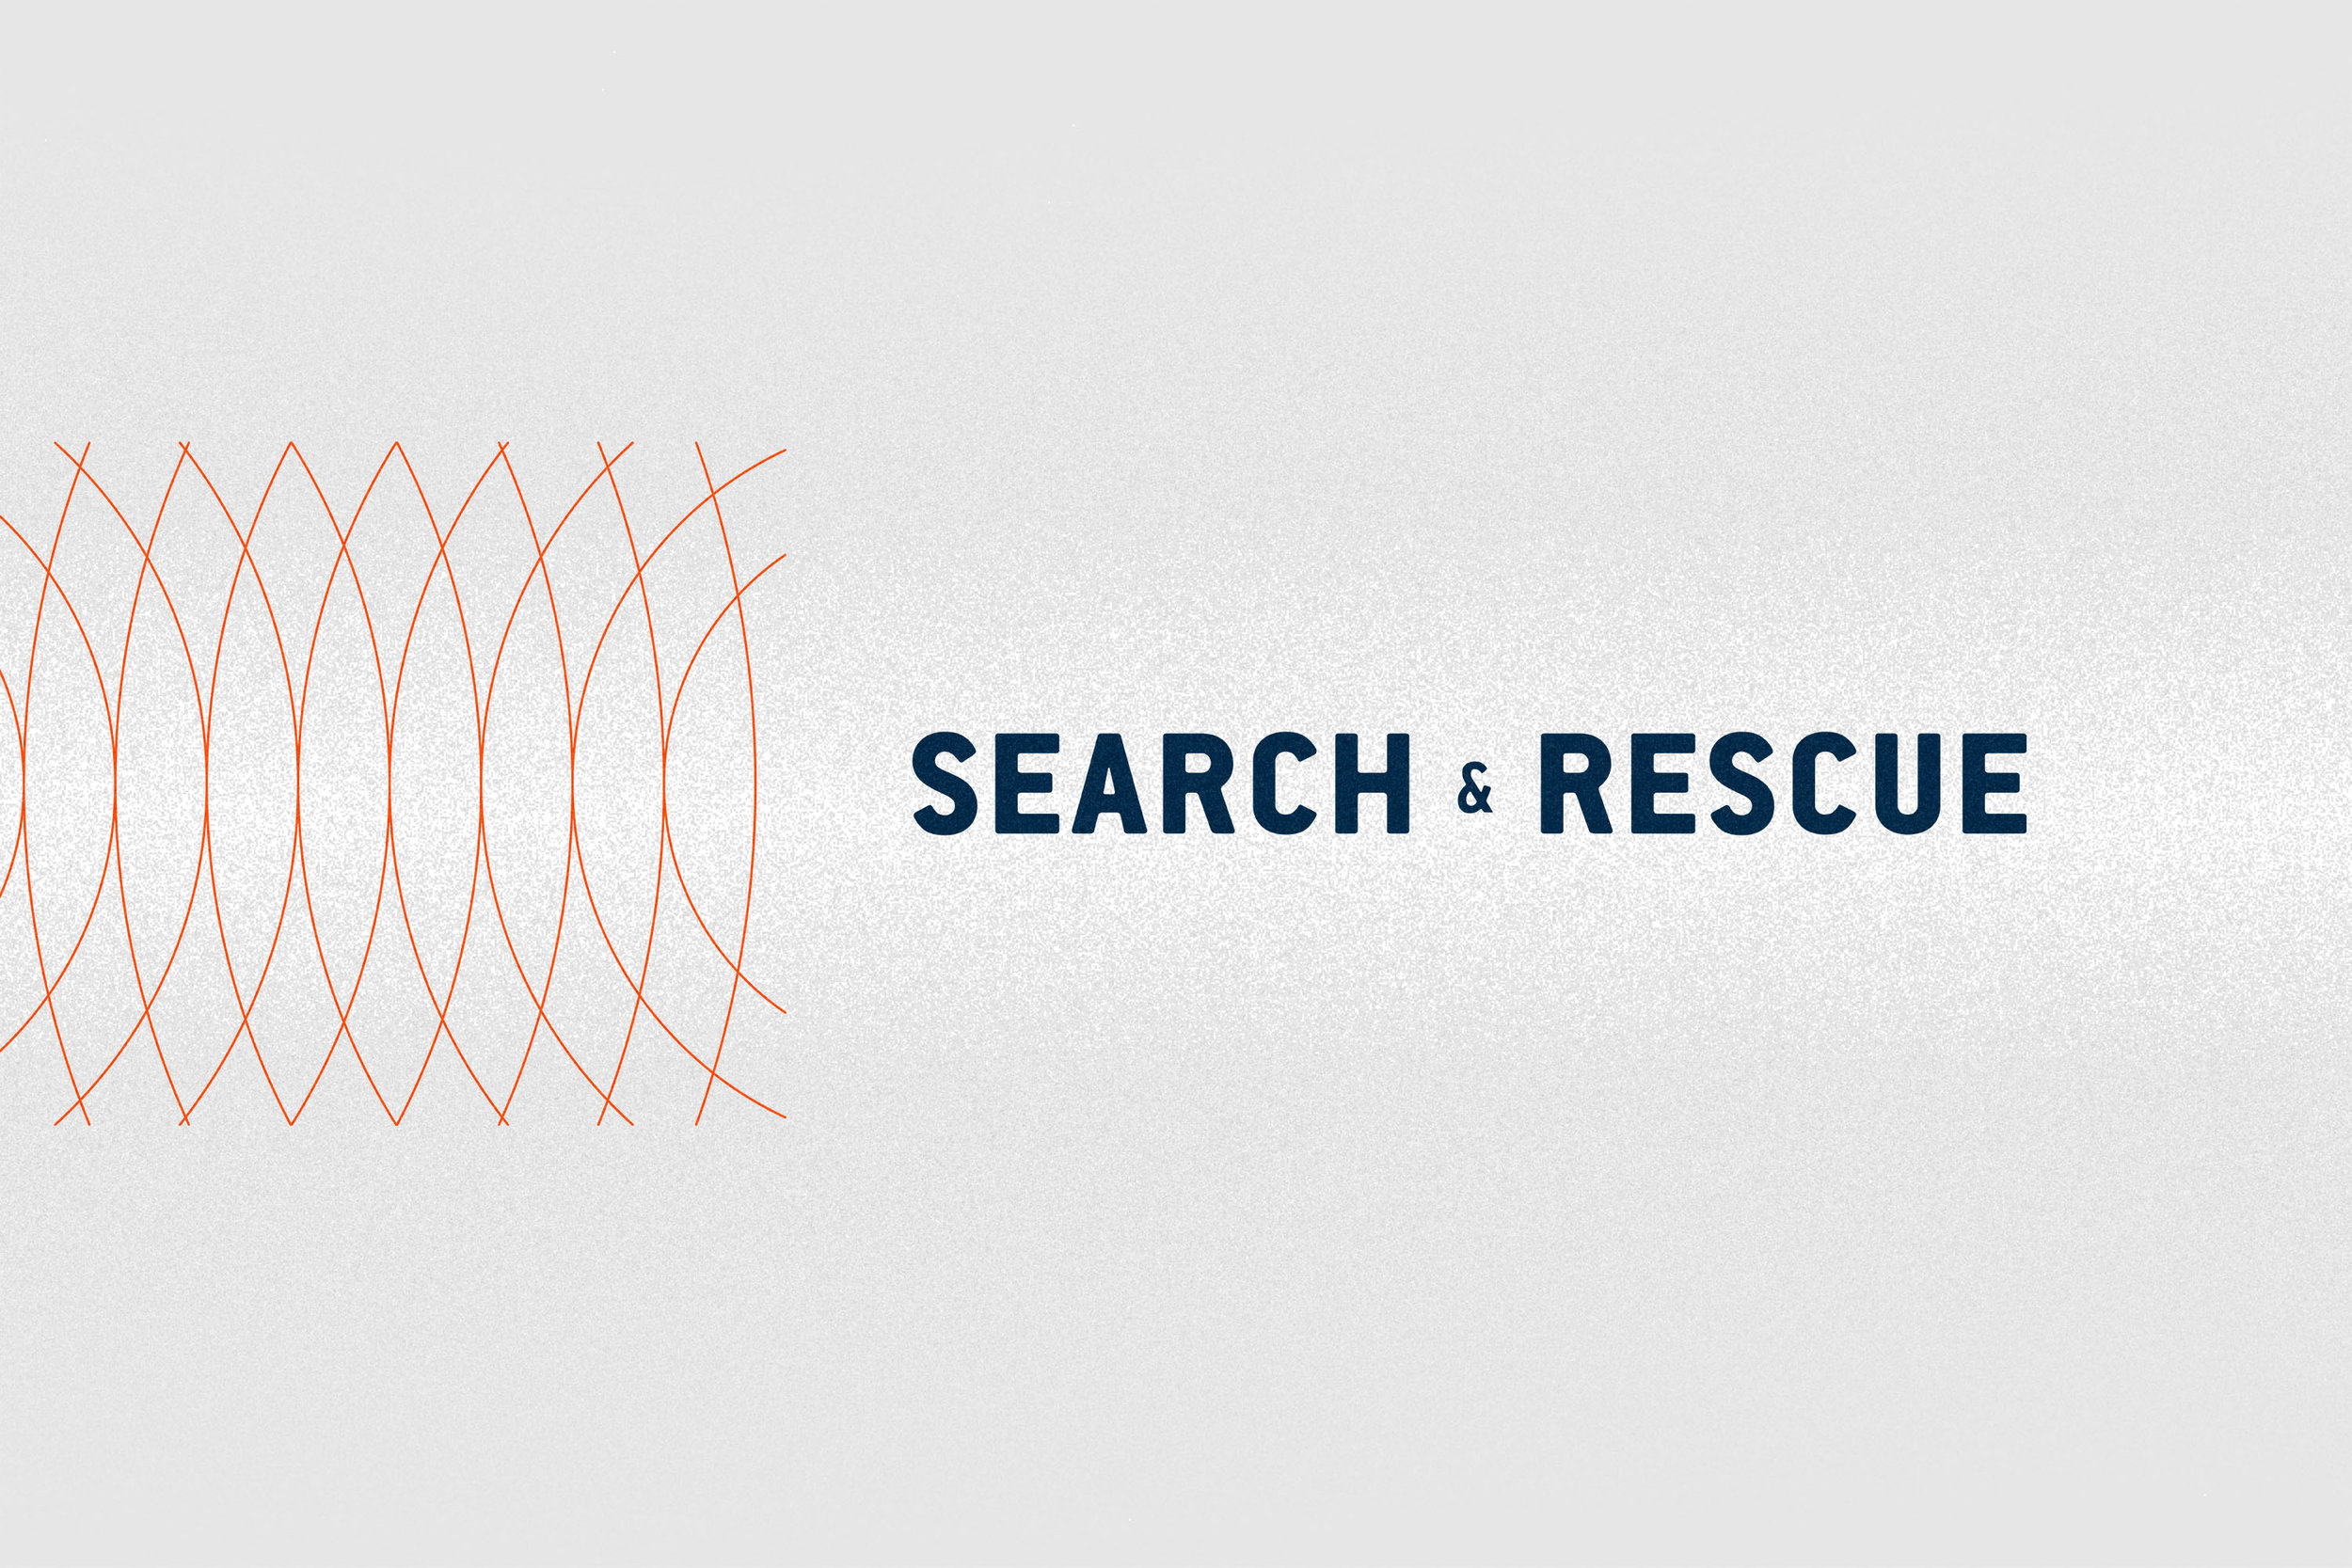 ronaldvillegas-chc-helicopter-search-and-rescue-type.jpg